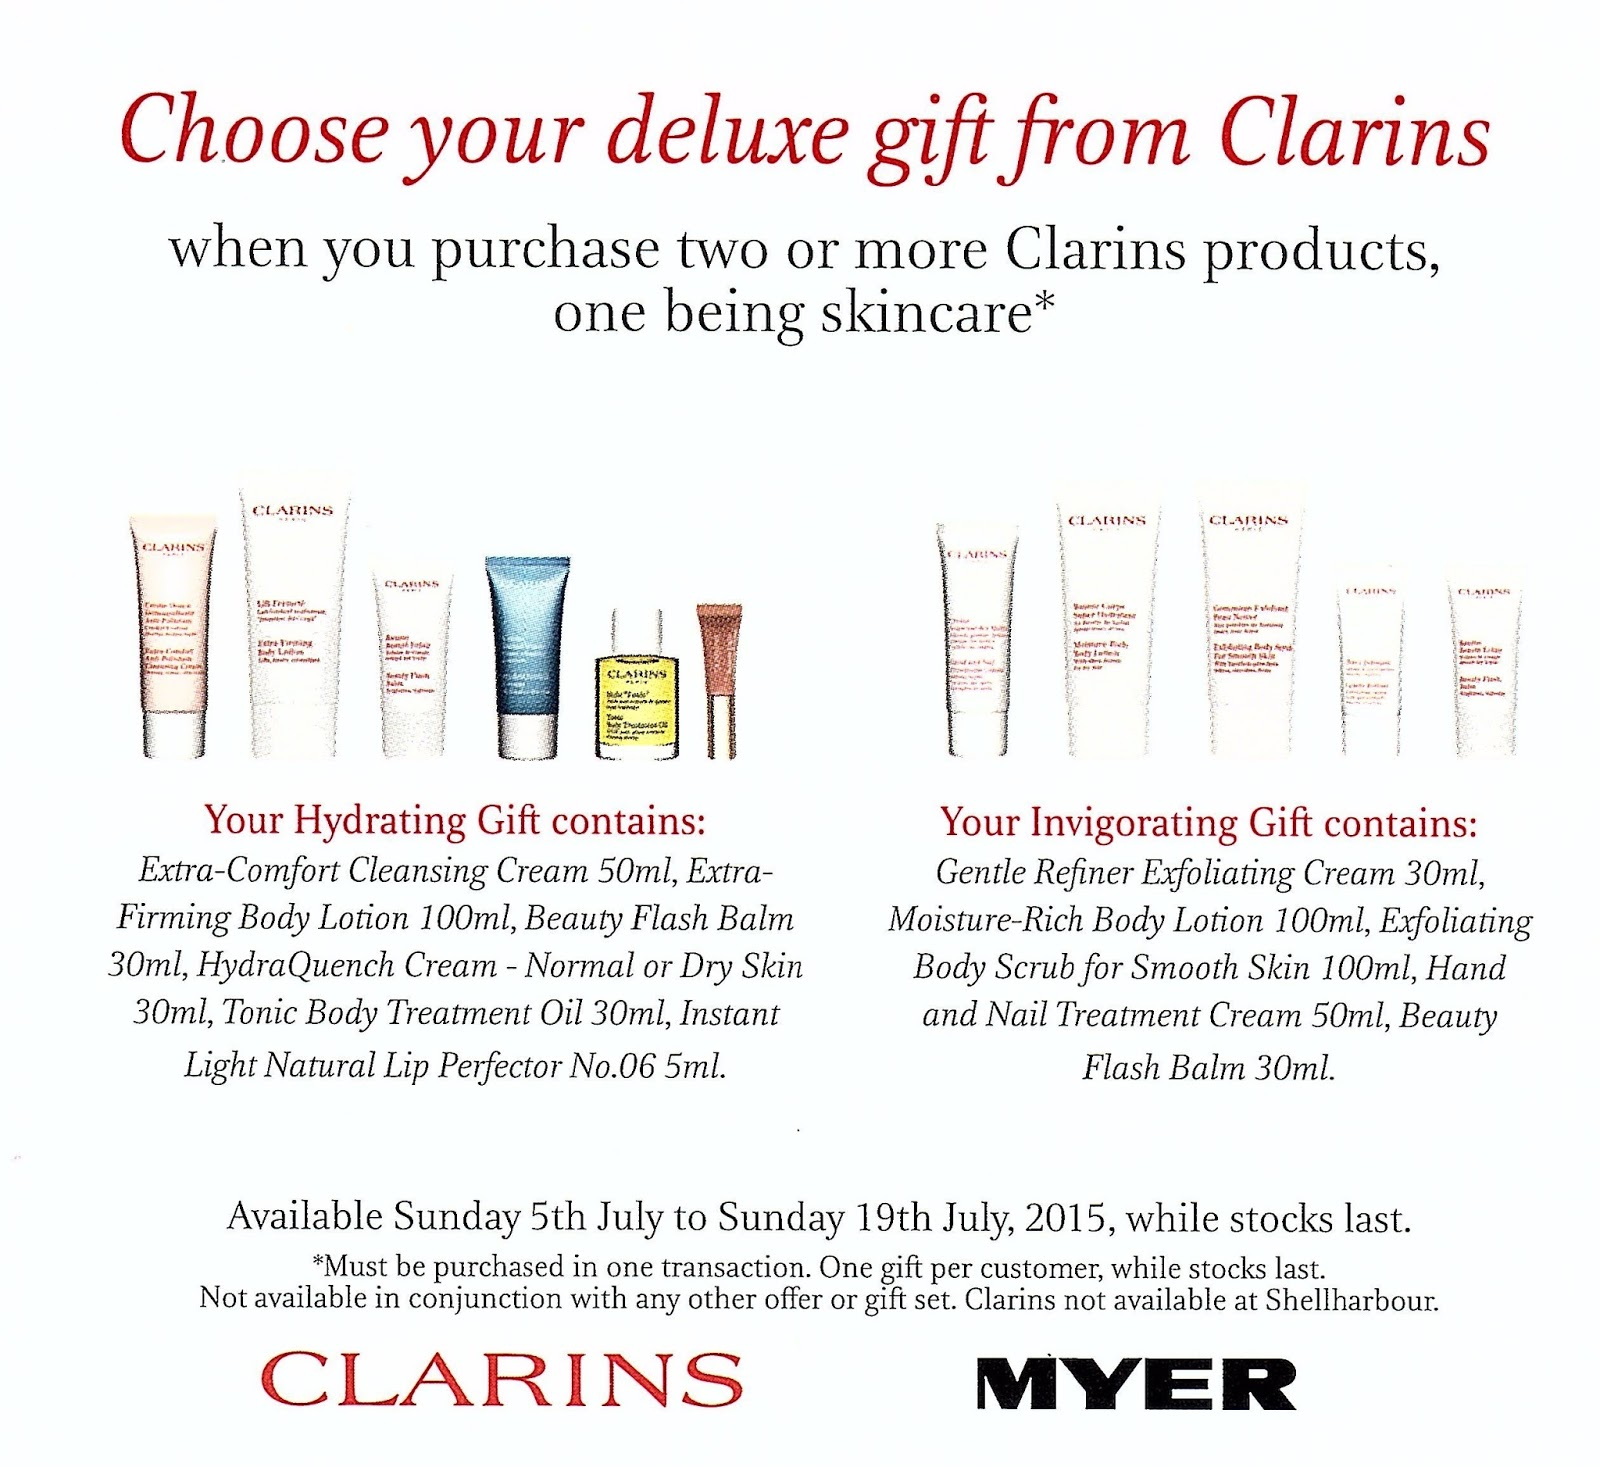 Mac Me And Other Cosmetic Dalliances Clarins Gwp At Myer Body Treatment Oil Tonic 30ml Apologies For The Low Quality Scan But I Thought It Worth Seeing What Is In Both Gifts Case You Like Laid Out A Nice Orderly Fashion Do